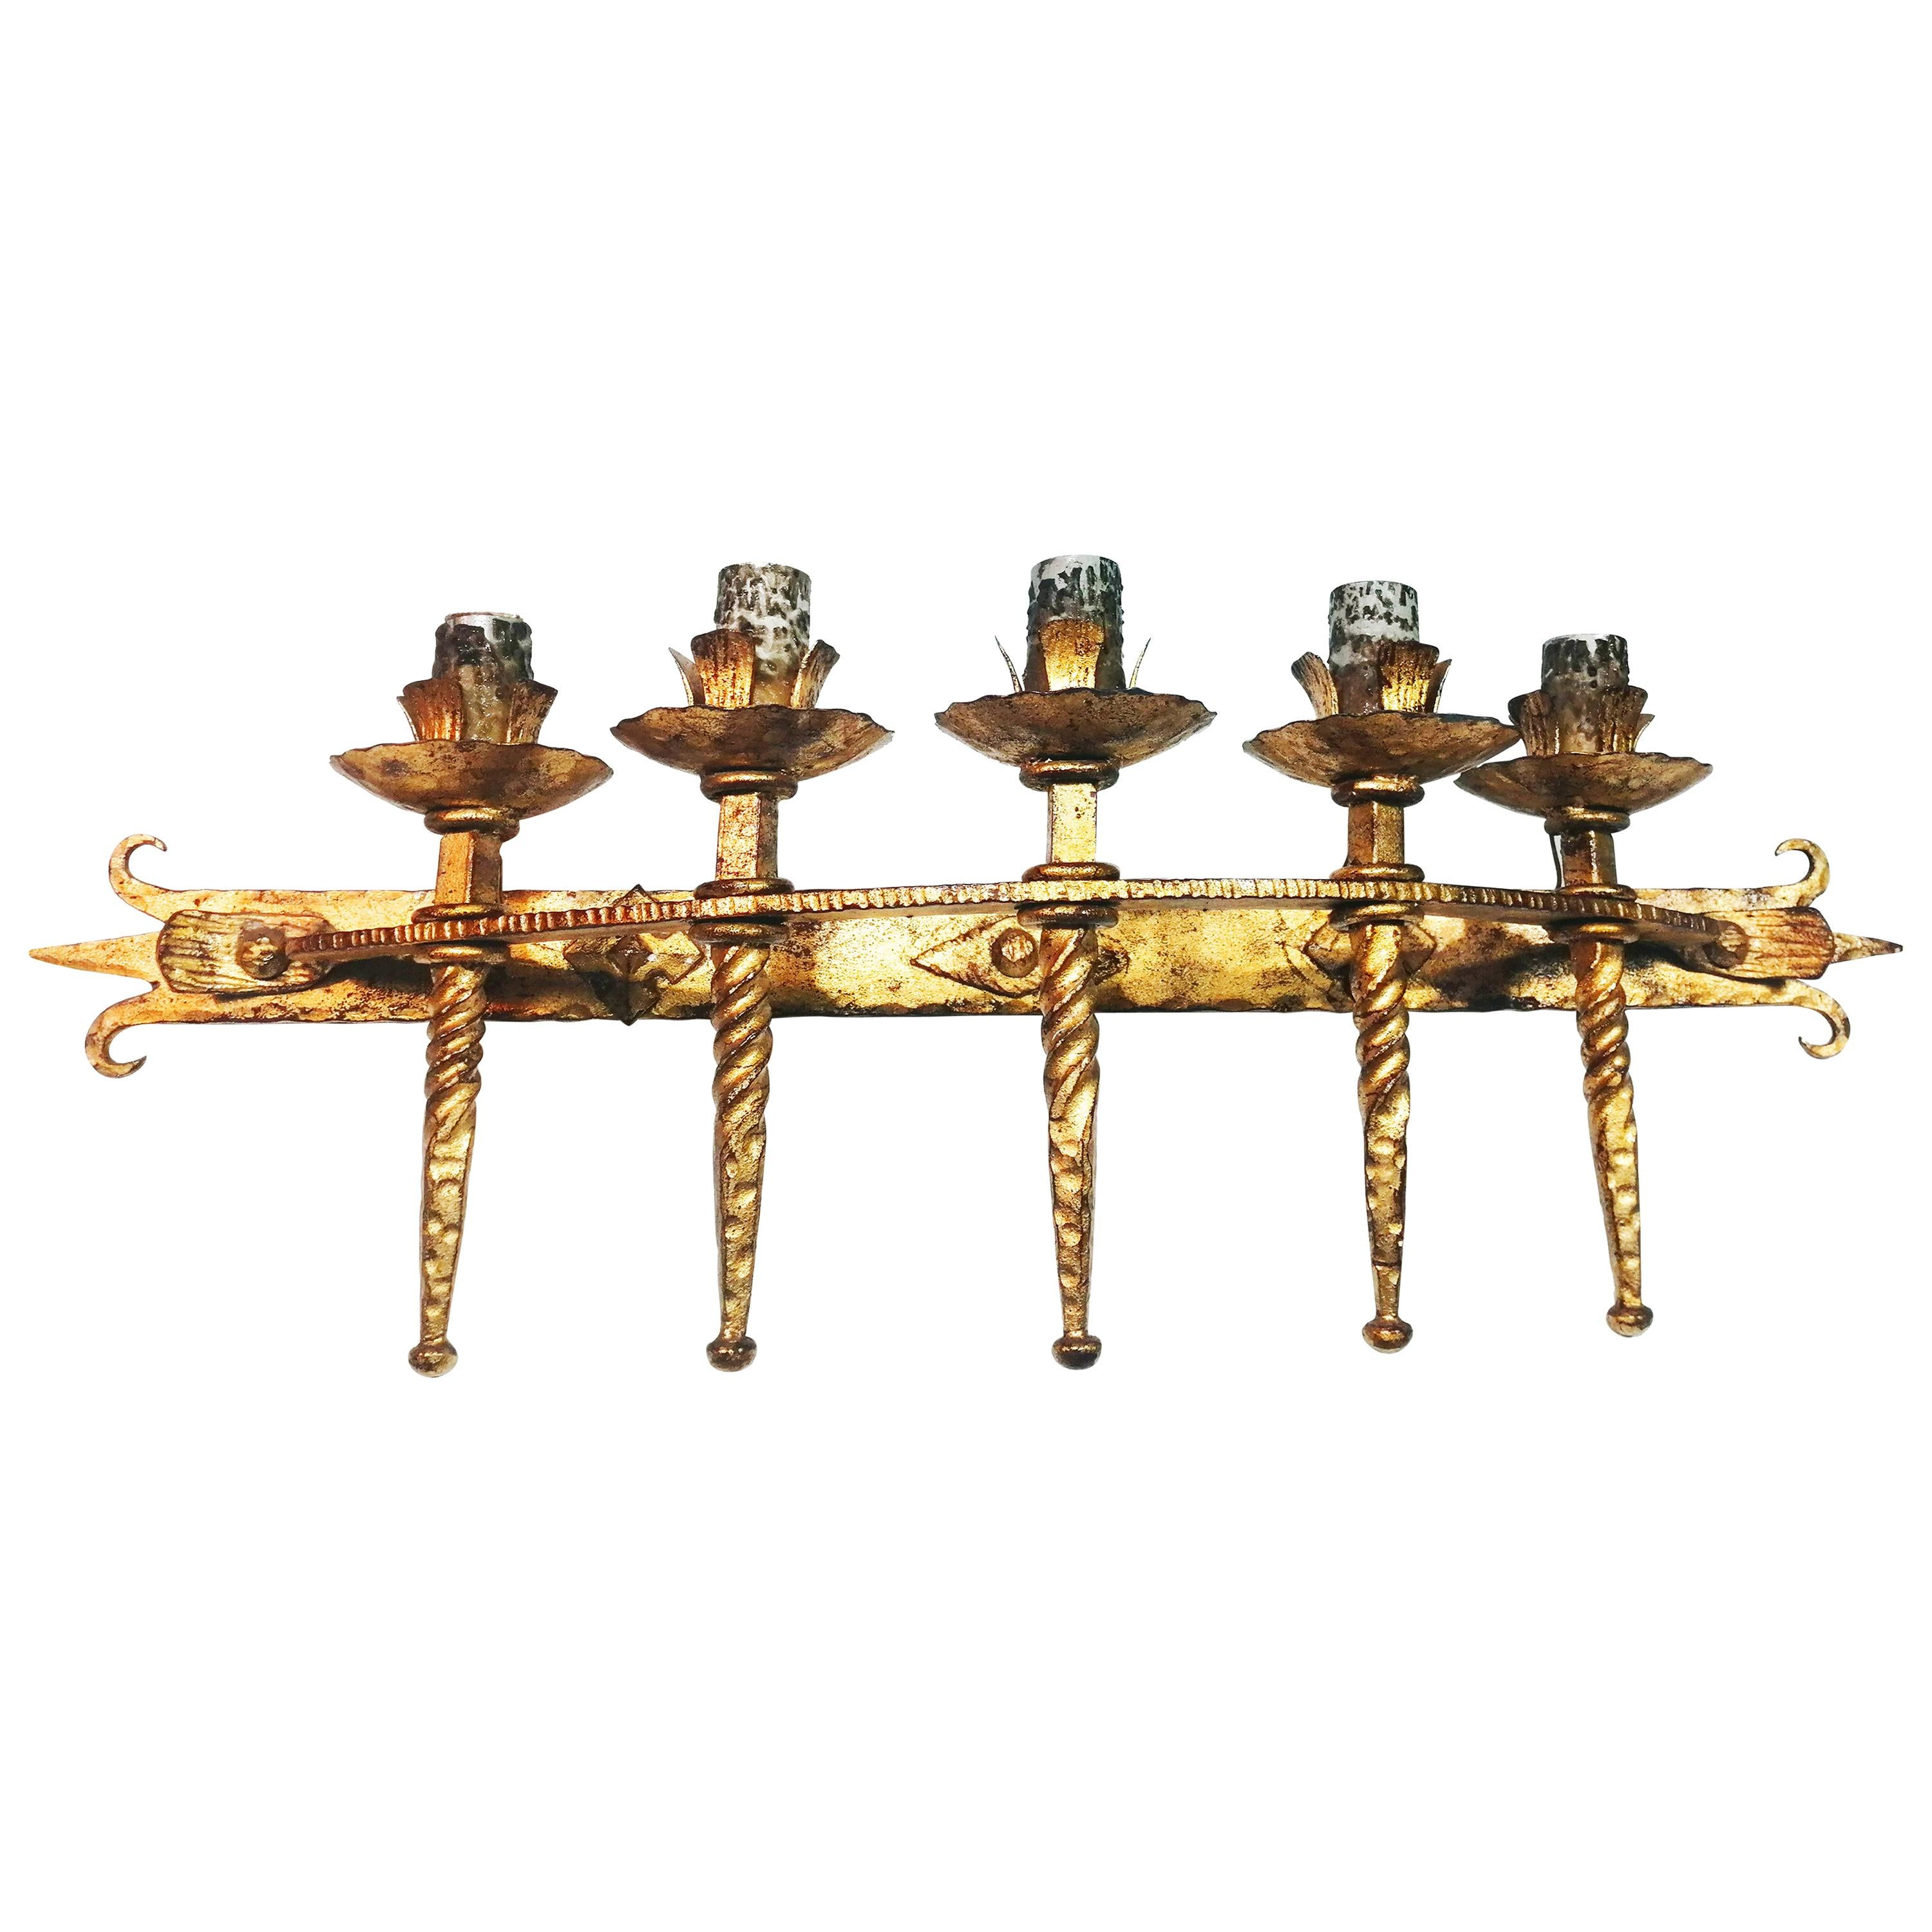 Spanish Brutalist Large Torch Wall Sconce in Gilt Wrought Iron